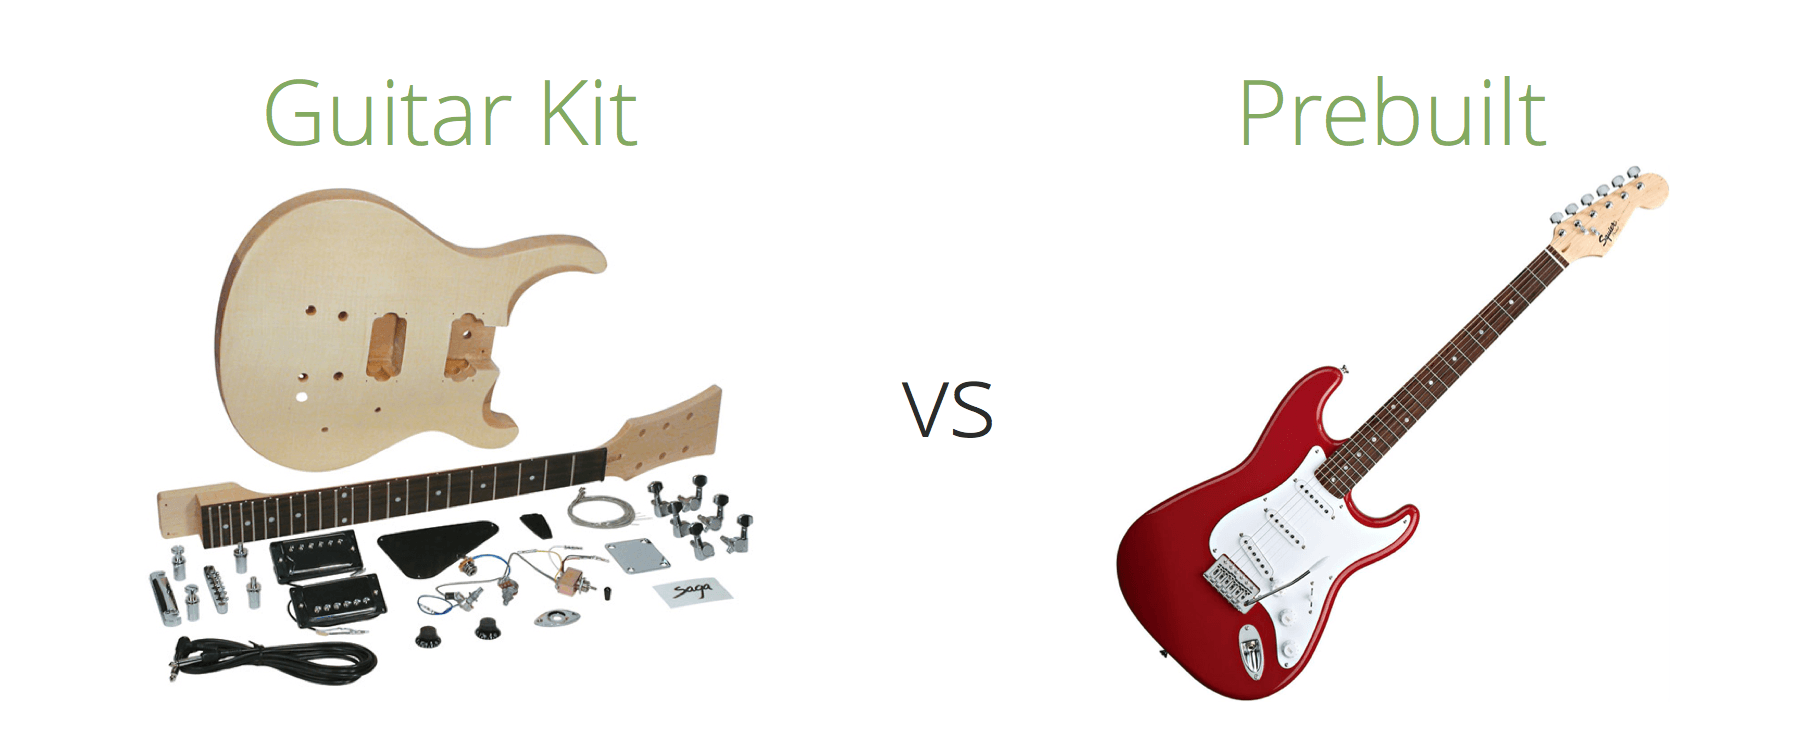 5 Compelling Reasons You Should Consider DIY Guitar Kits | Musician Tuts